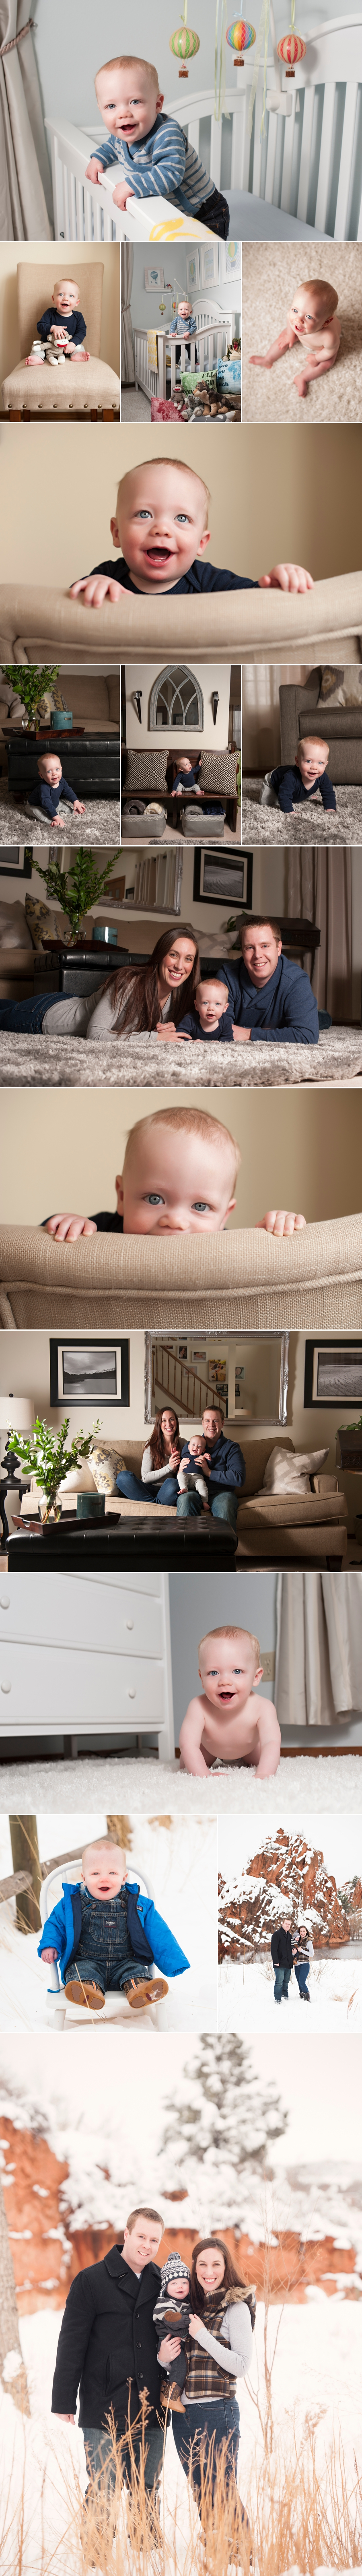 Colorado springs 6 month baby photography Jonathan Betz